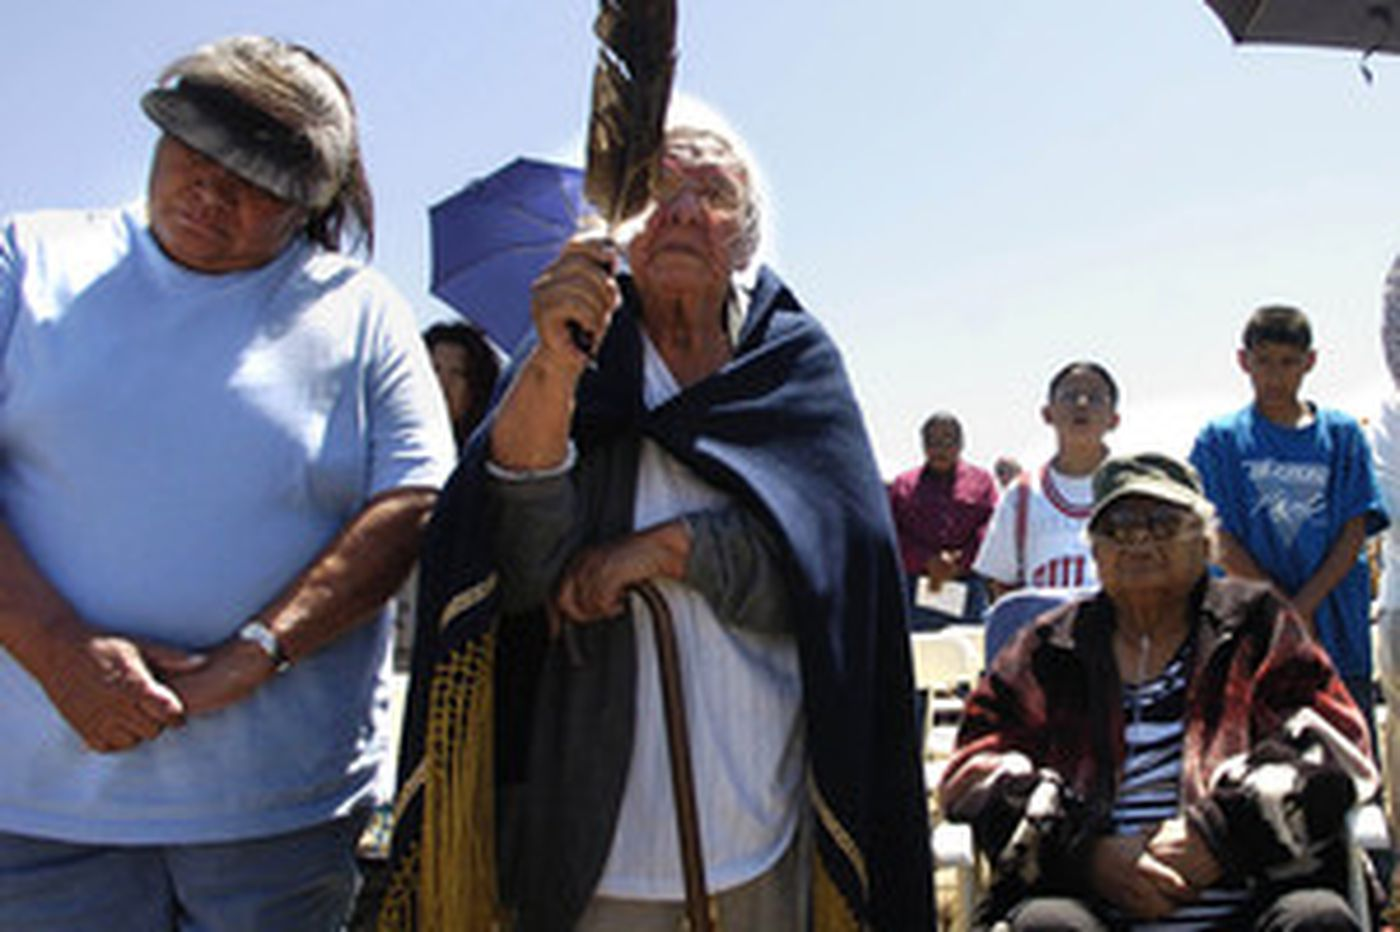 Memorial in Colo. now marks revenge slaughter of Indians